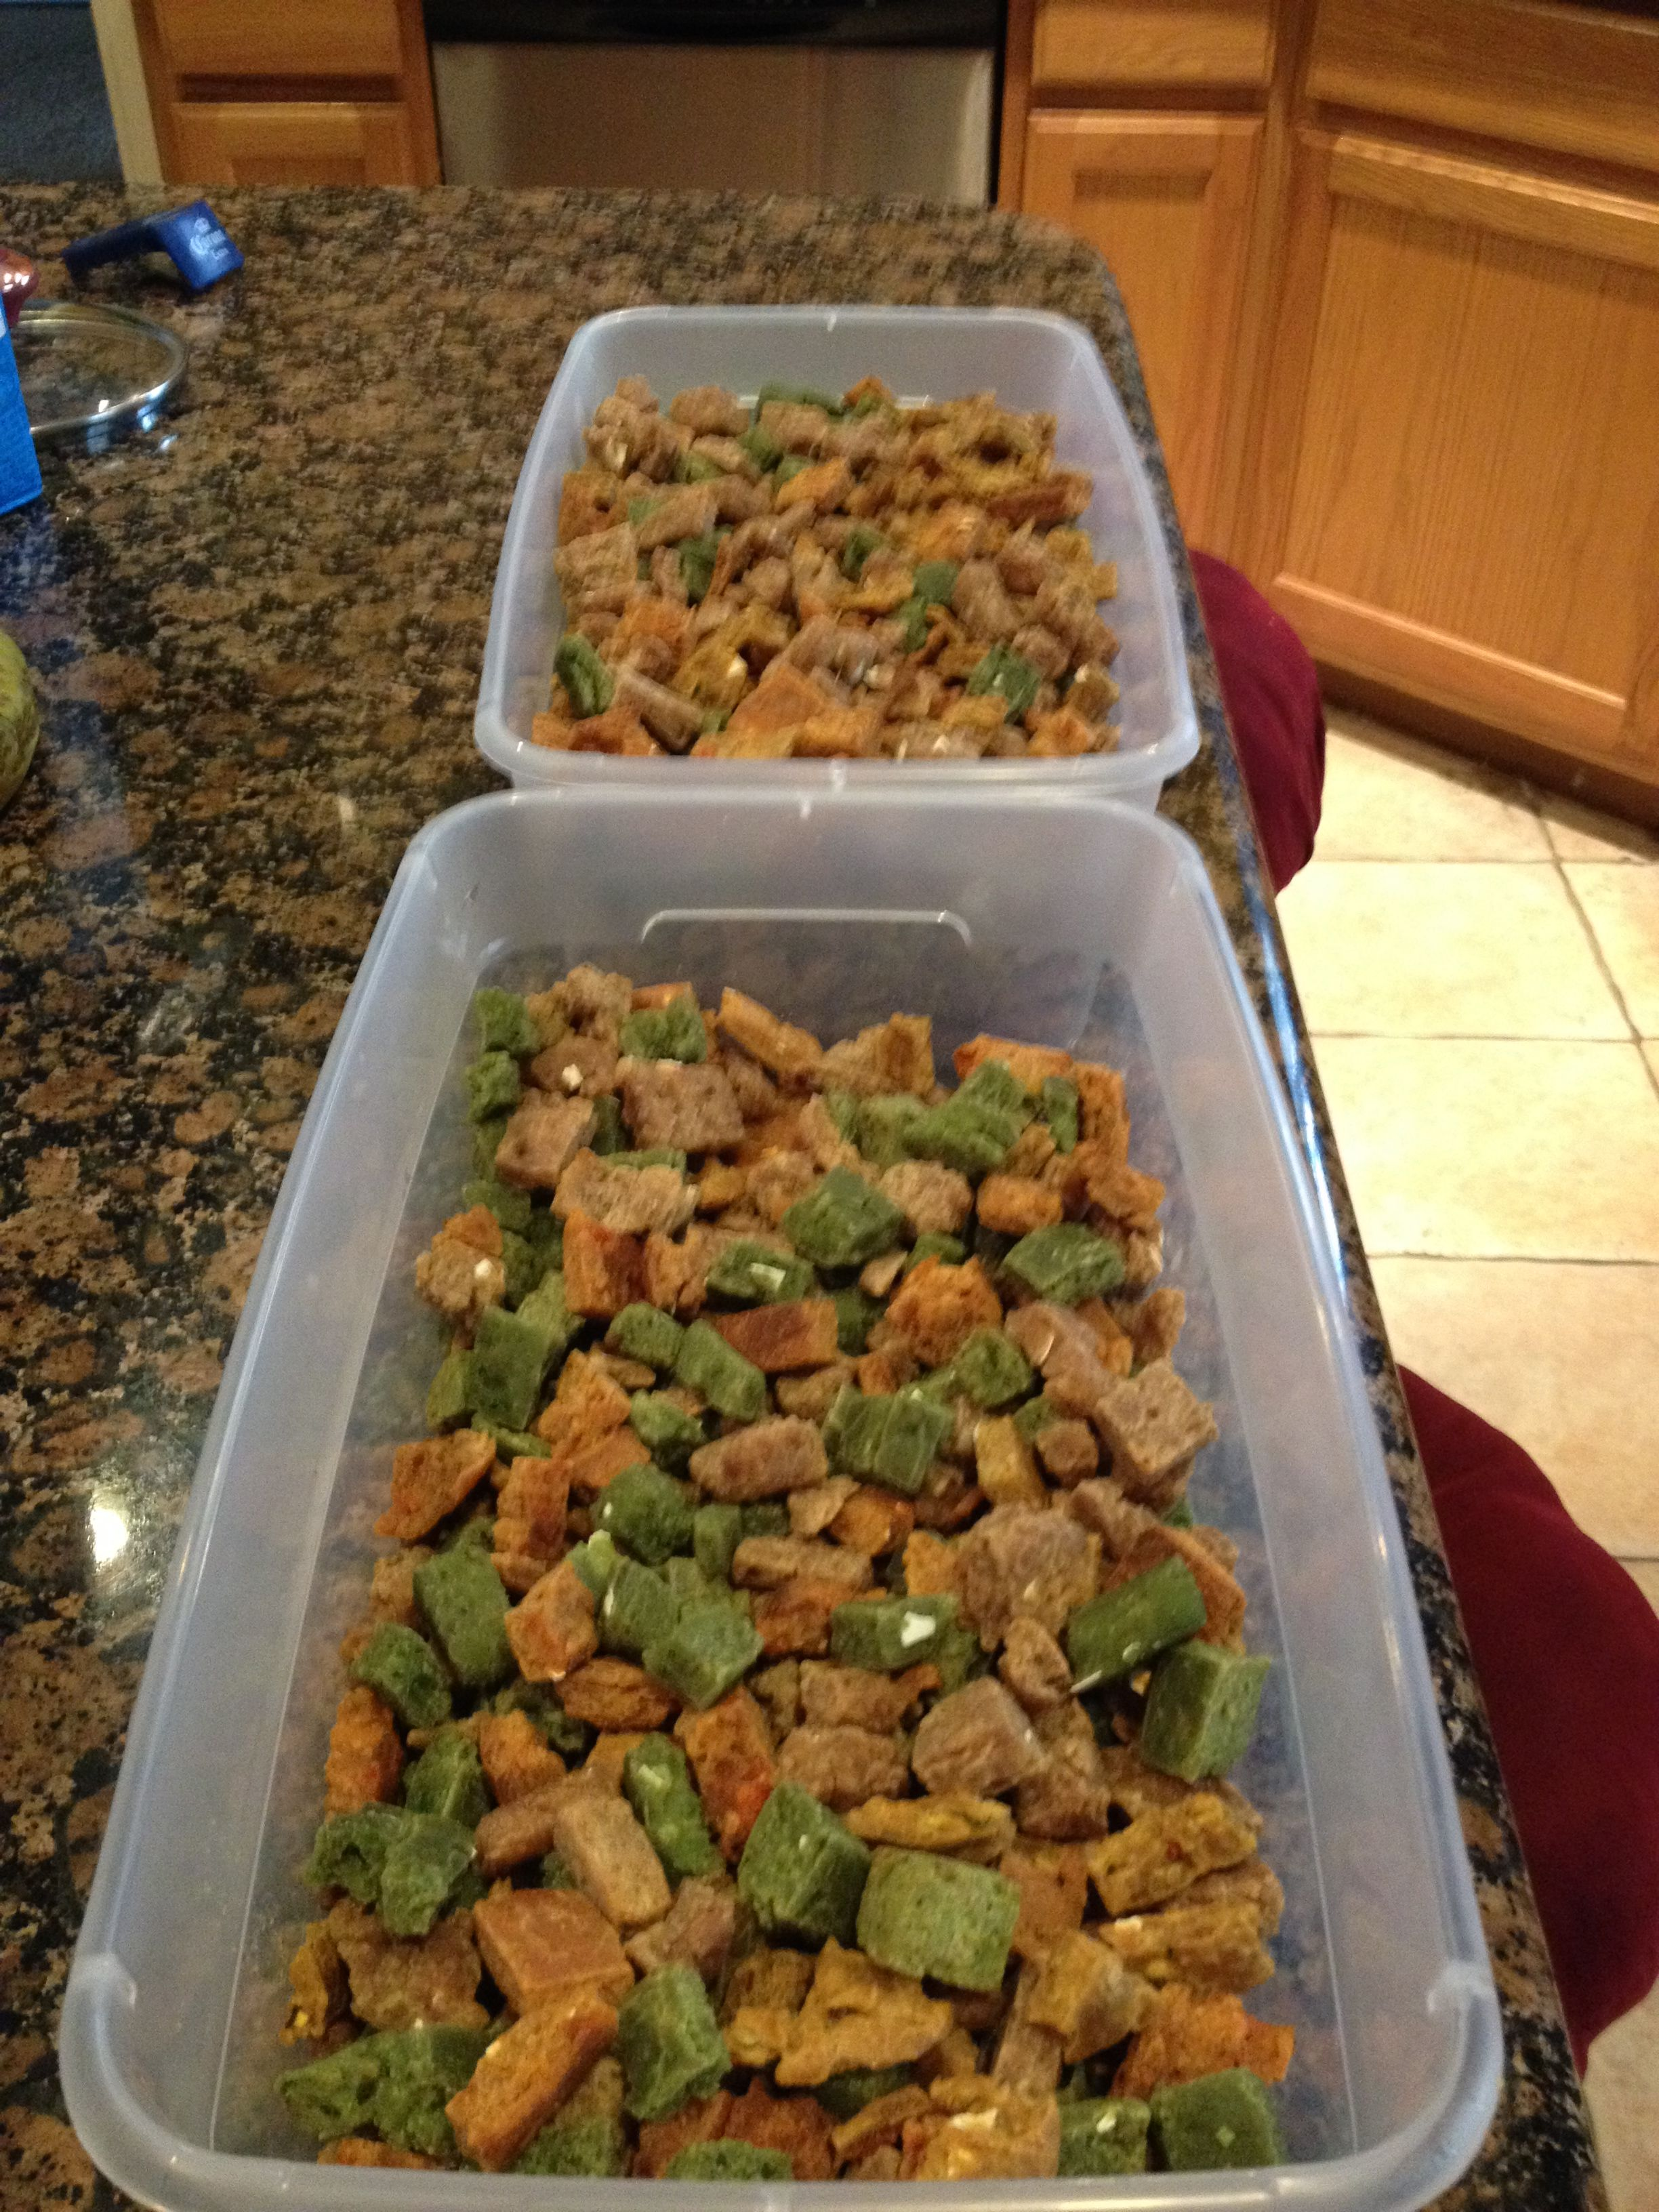 Homemade Dry Dog Food I Made For The Babies Healthy Dog Food